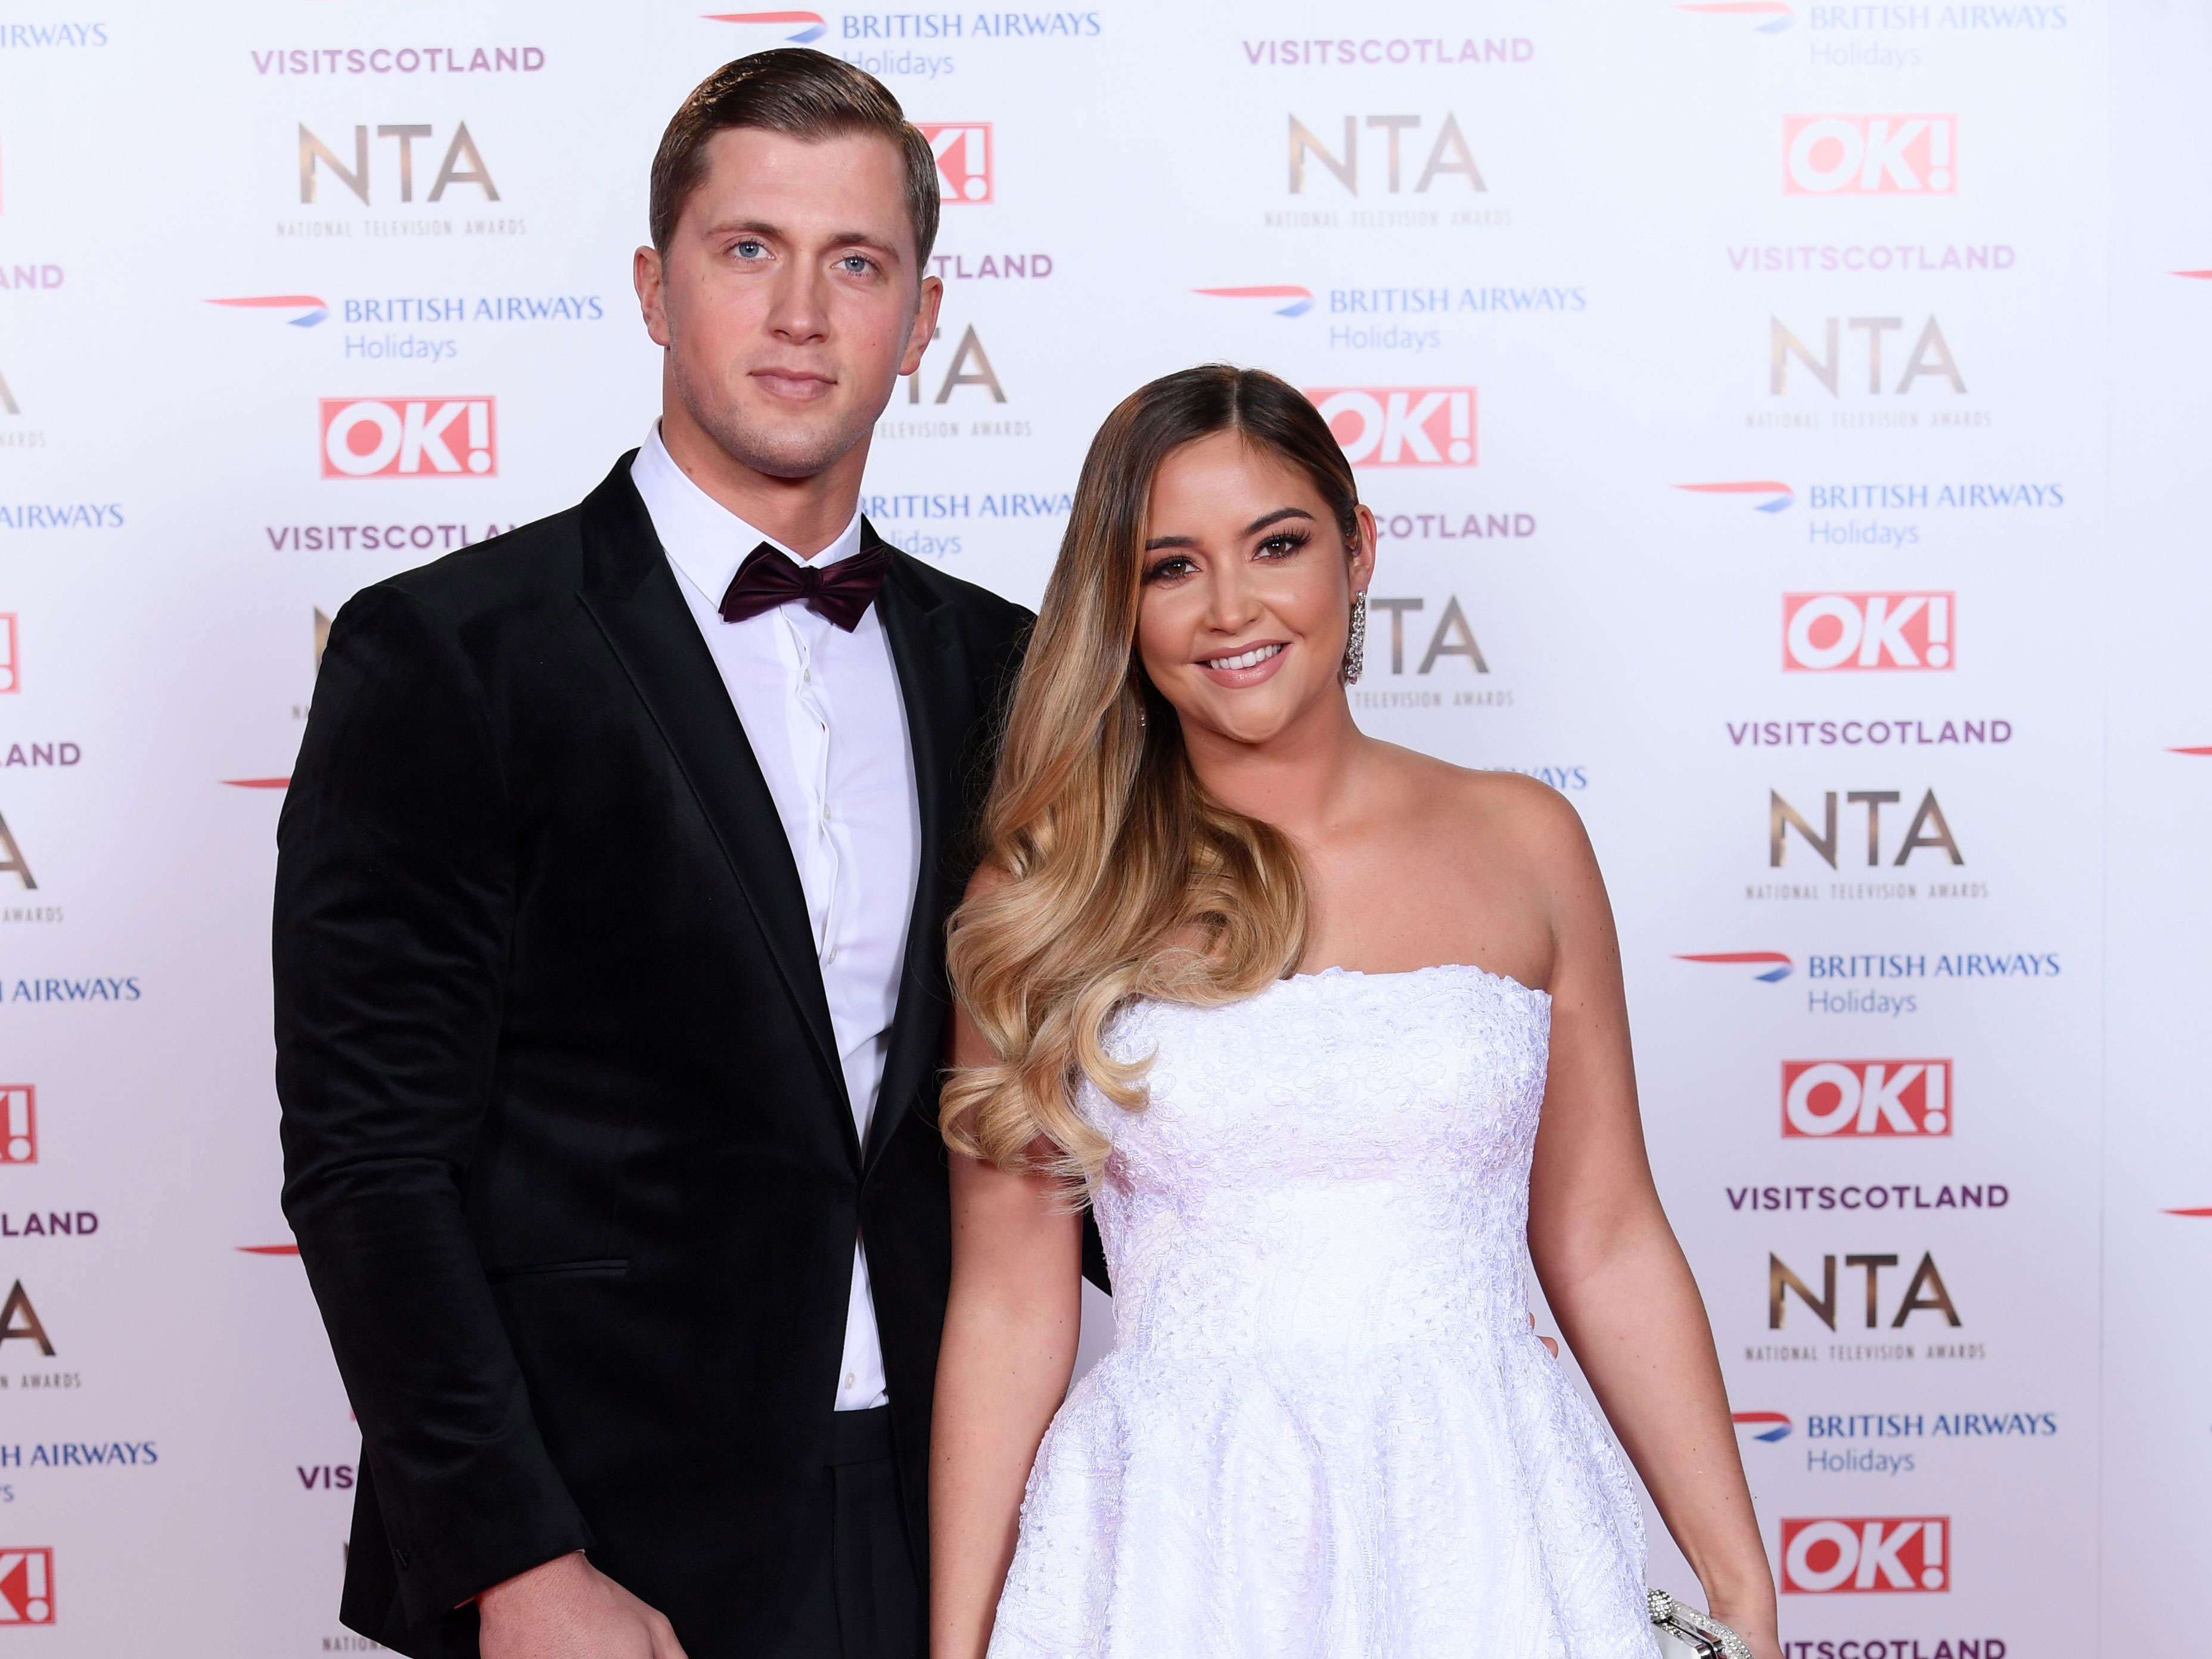 Jacqueline Jossa hits back at haters with seriously sultry snap as she enjoys time with Dan Osborne